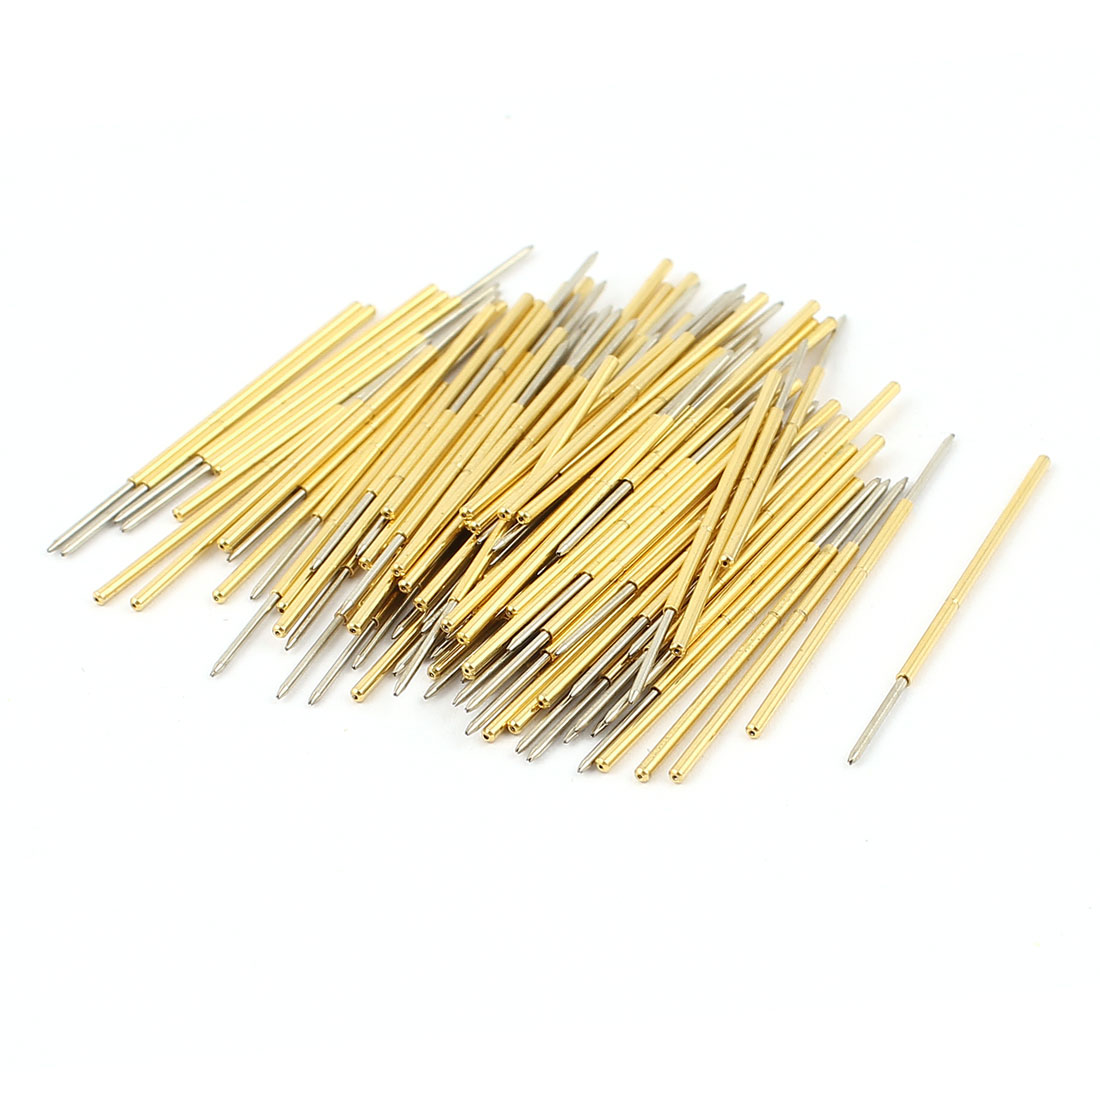 100 Pcs PL75-F 0.74mm Tip Spring Testing Probes Pin 33.5mm Length